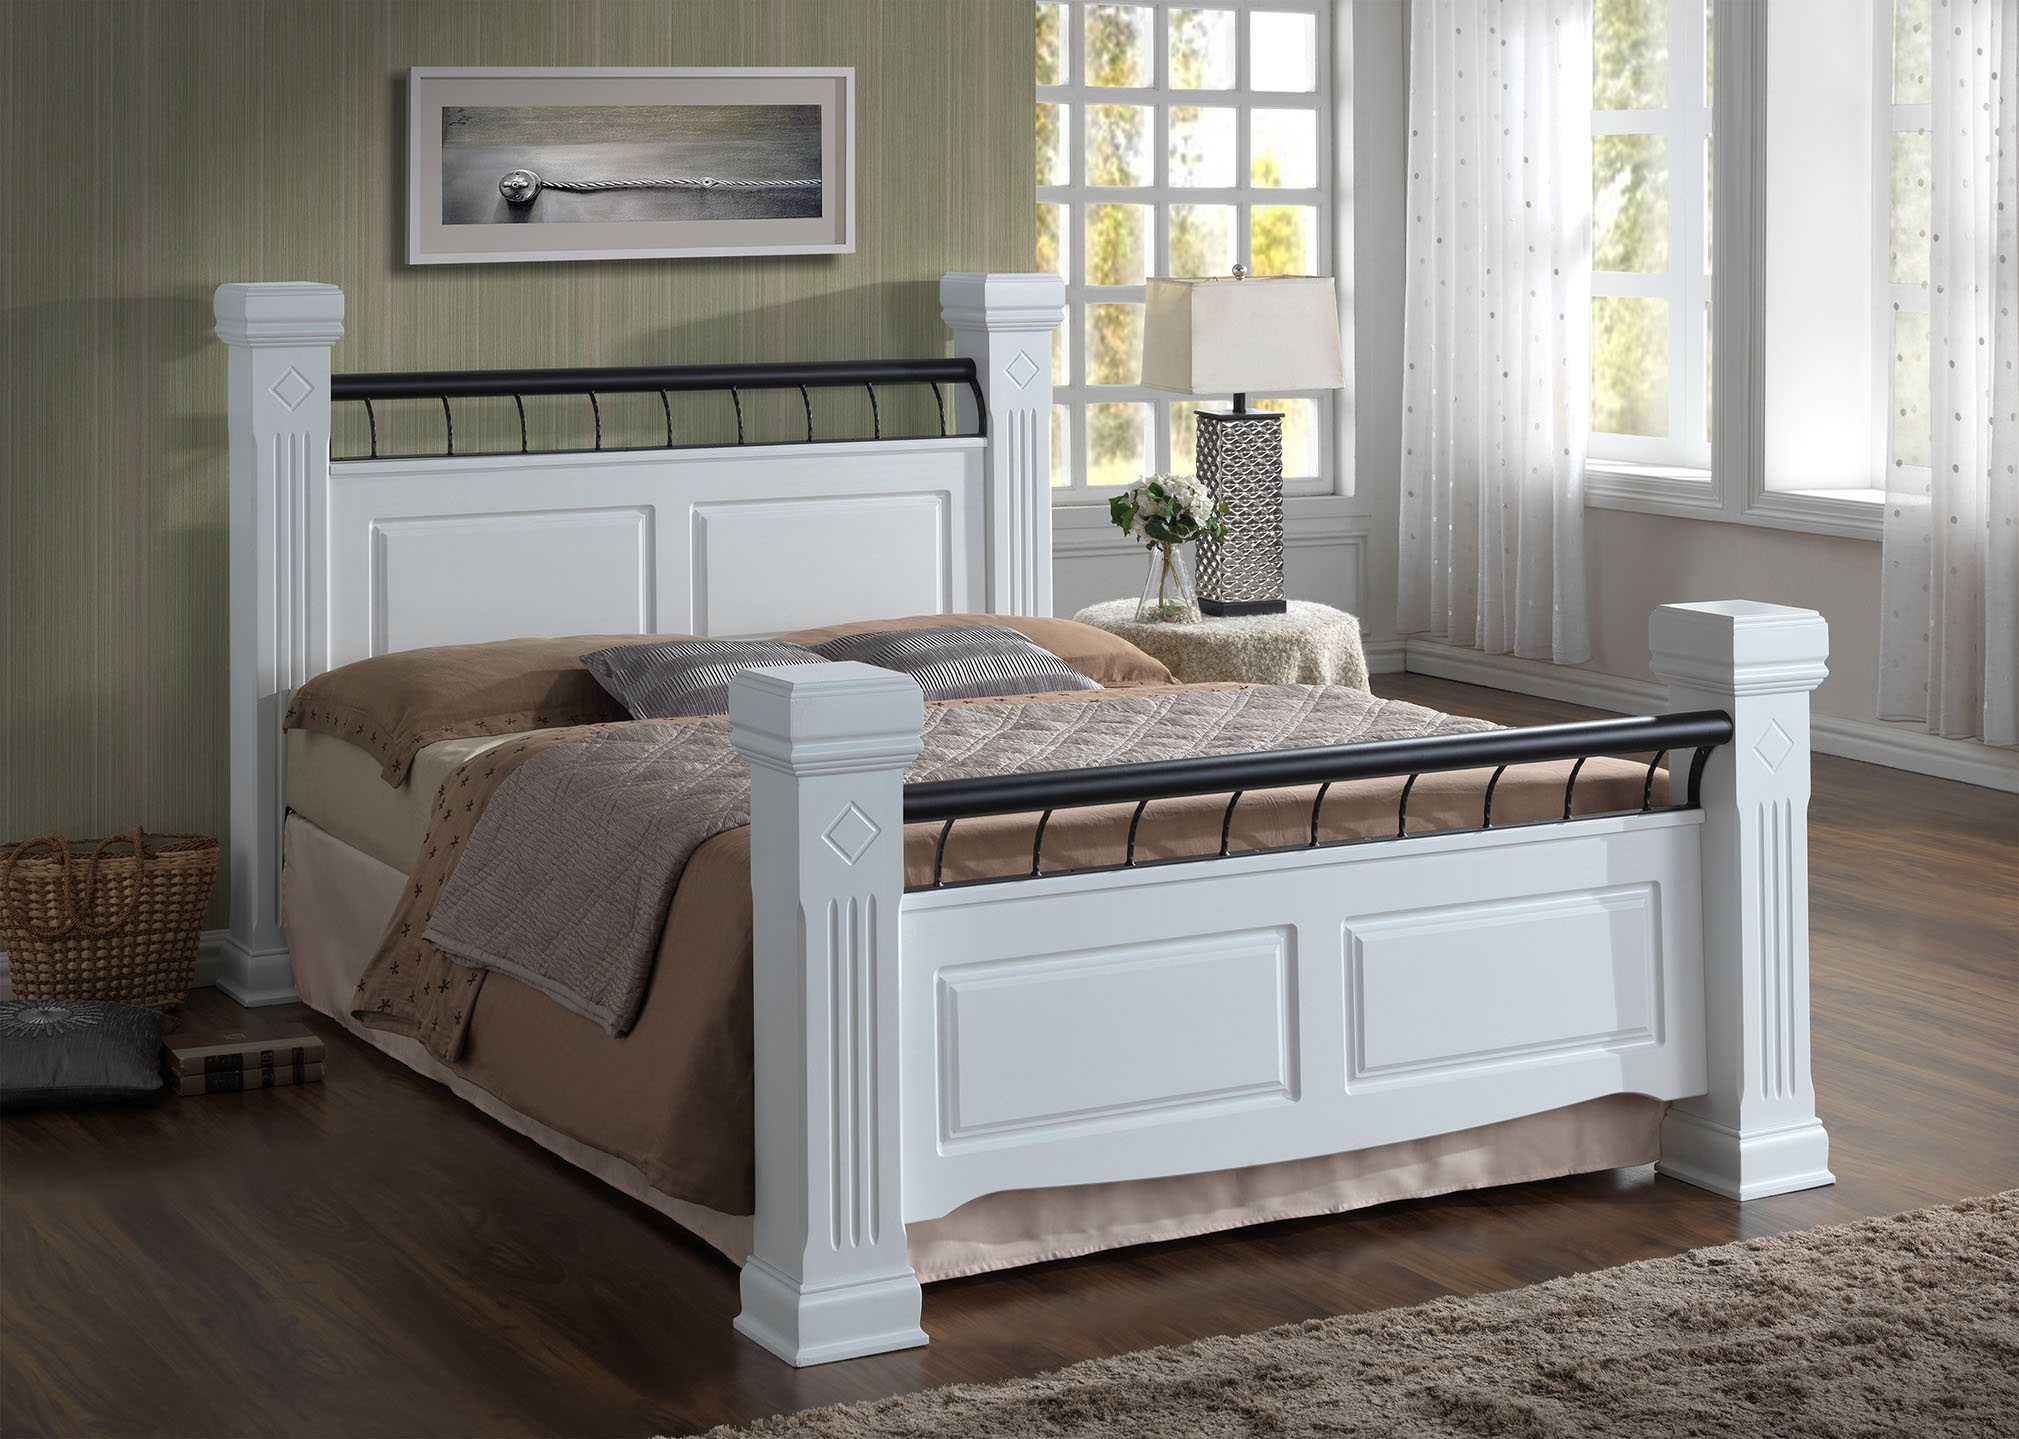 Ideal Furniture Rolo White 4\' 6 Double Wooden Bed Image0 Image